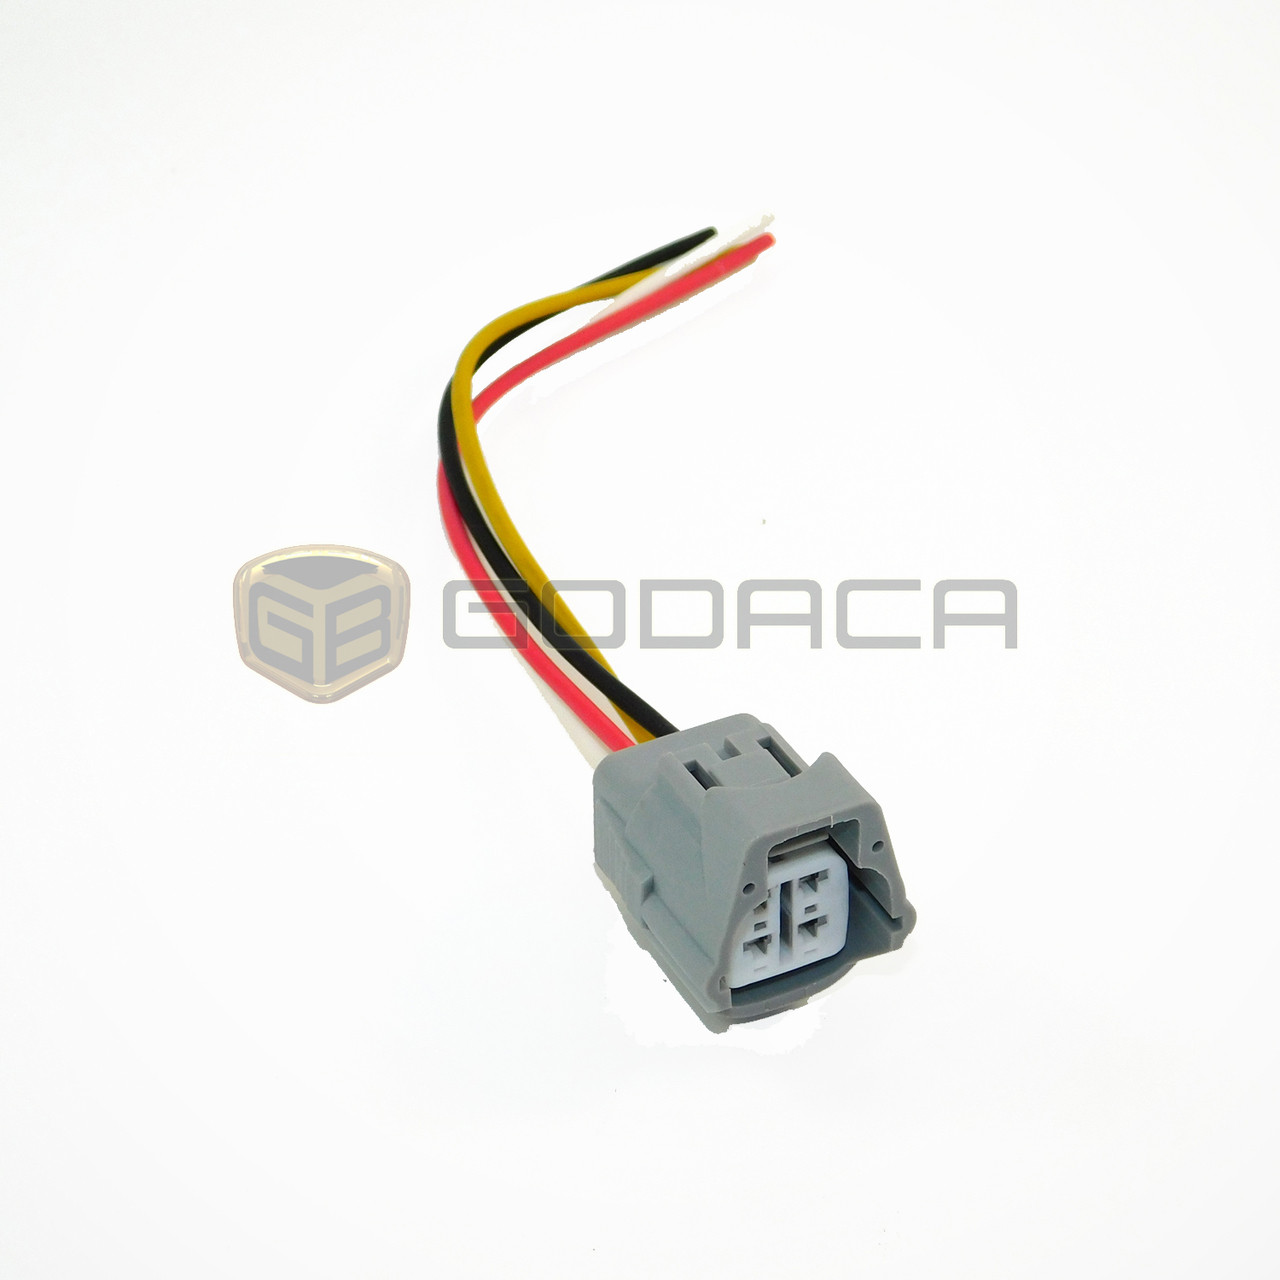 medium resolution of 1 x connector 4 way toyota 2jz a c 4p connector pigtail wiring harness sensor godaca llc